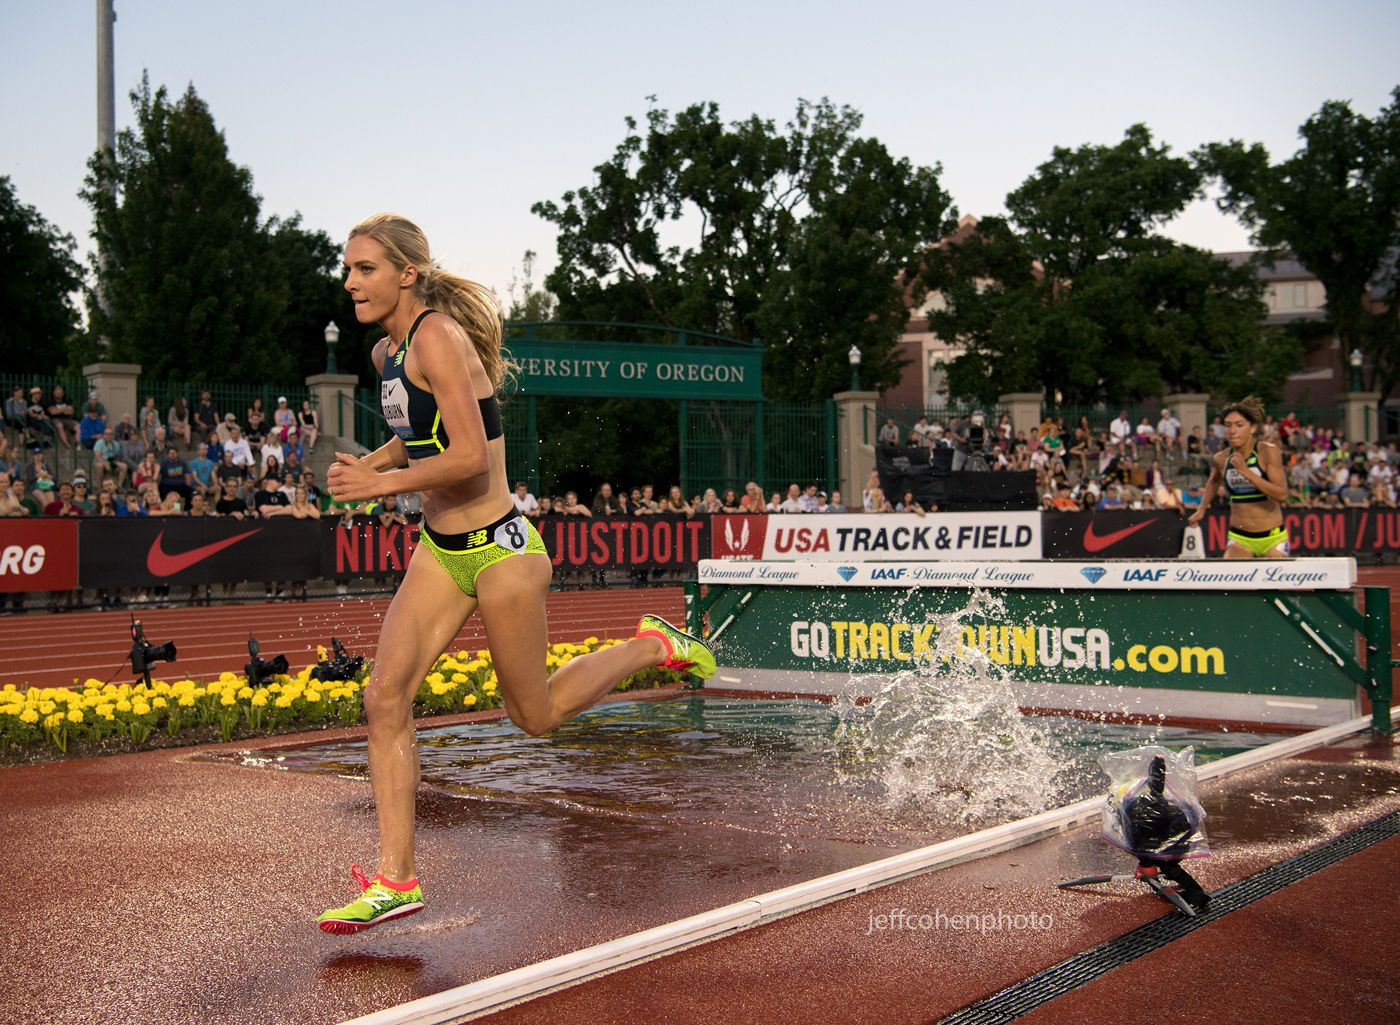 1r2017_pre_classic_pre_meet_night_coburn_steeple_w_water__jeff_cohen_photo__1847_web.jpg